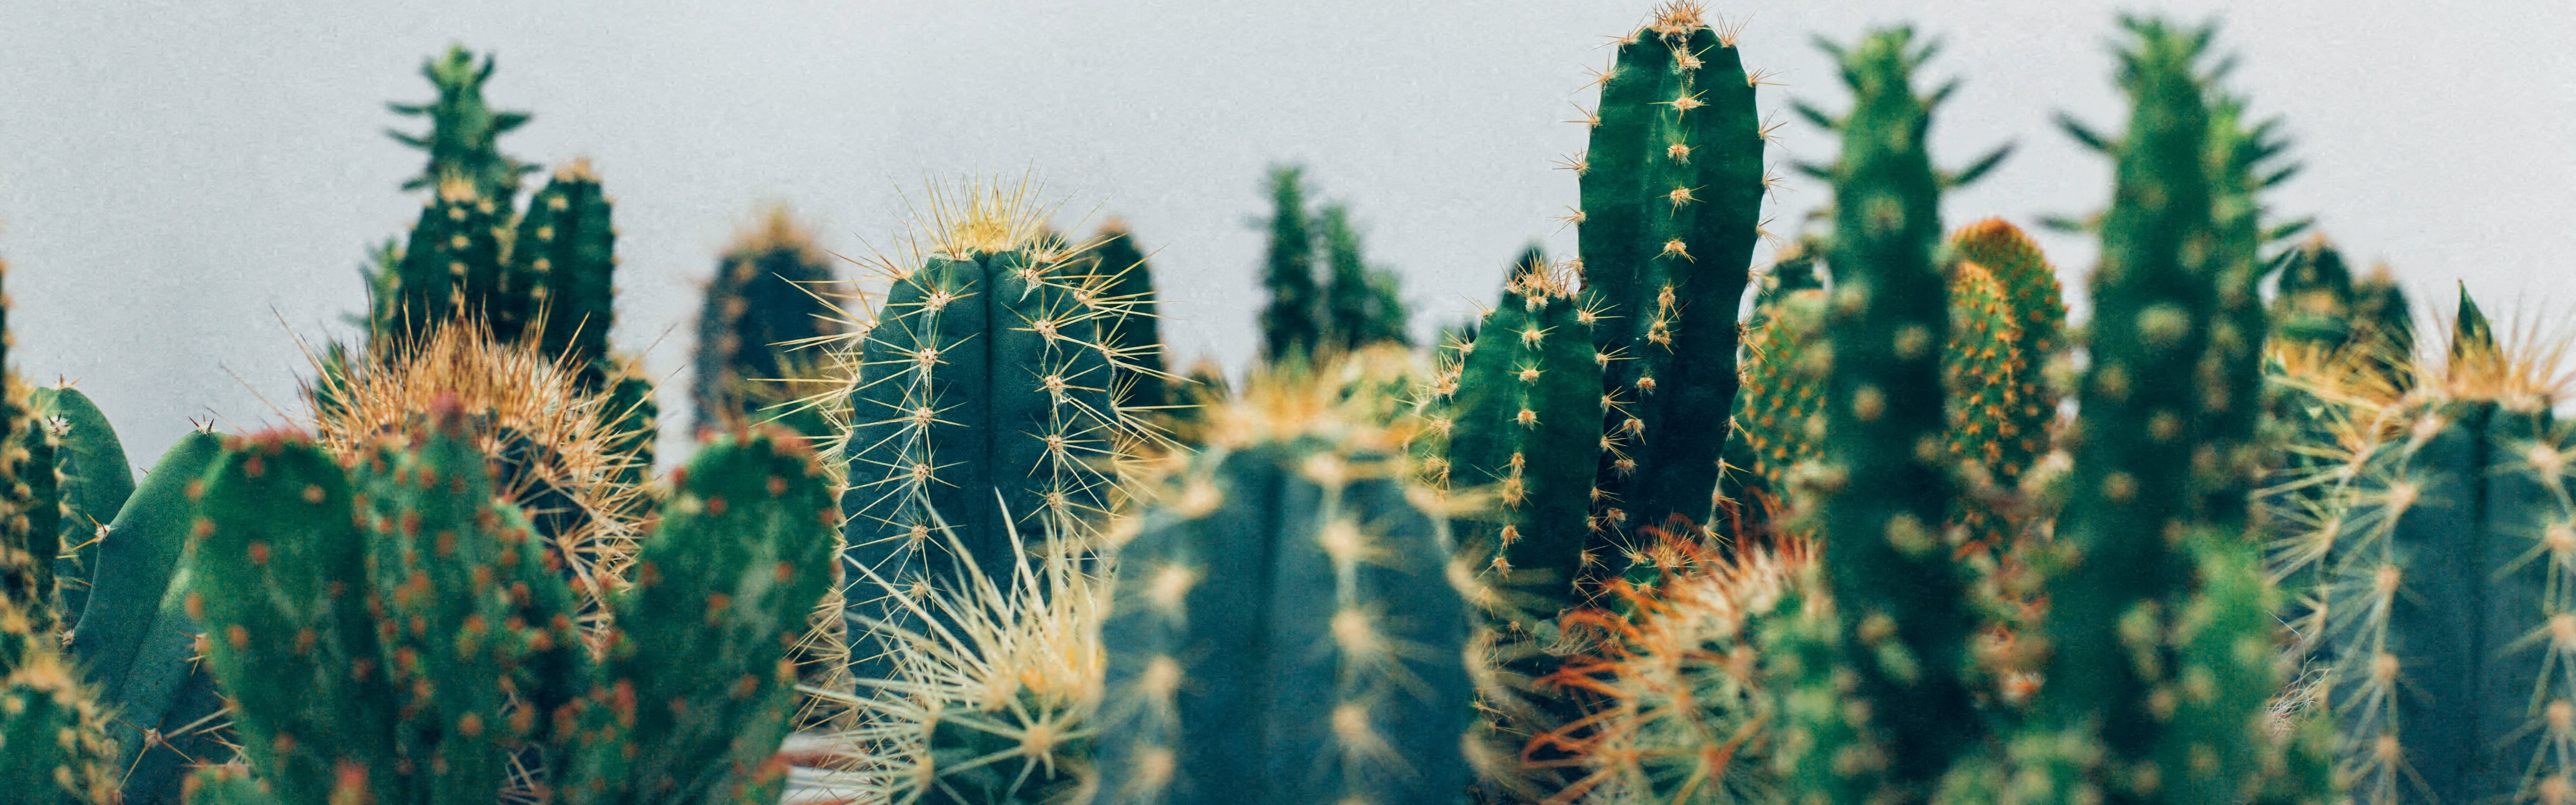 Stock Image of the Tops of Cacti in Front of White Background